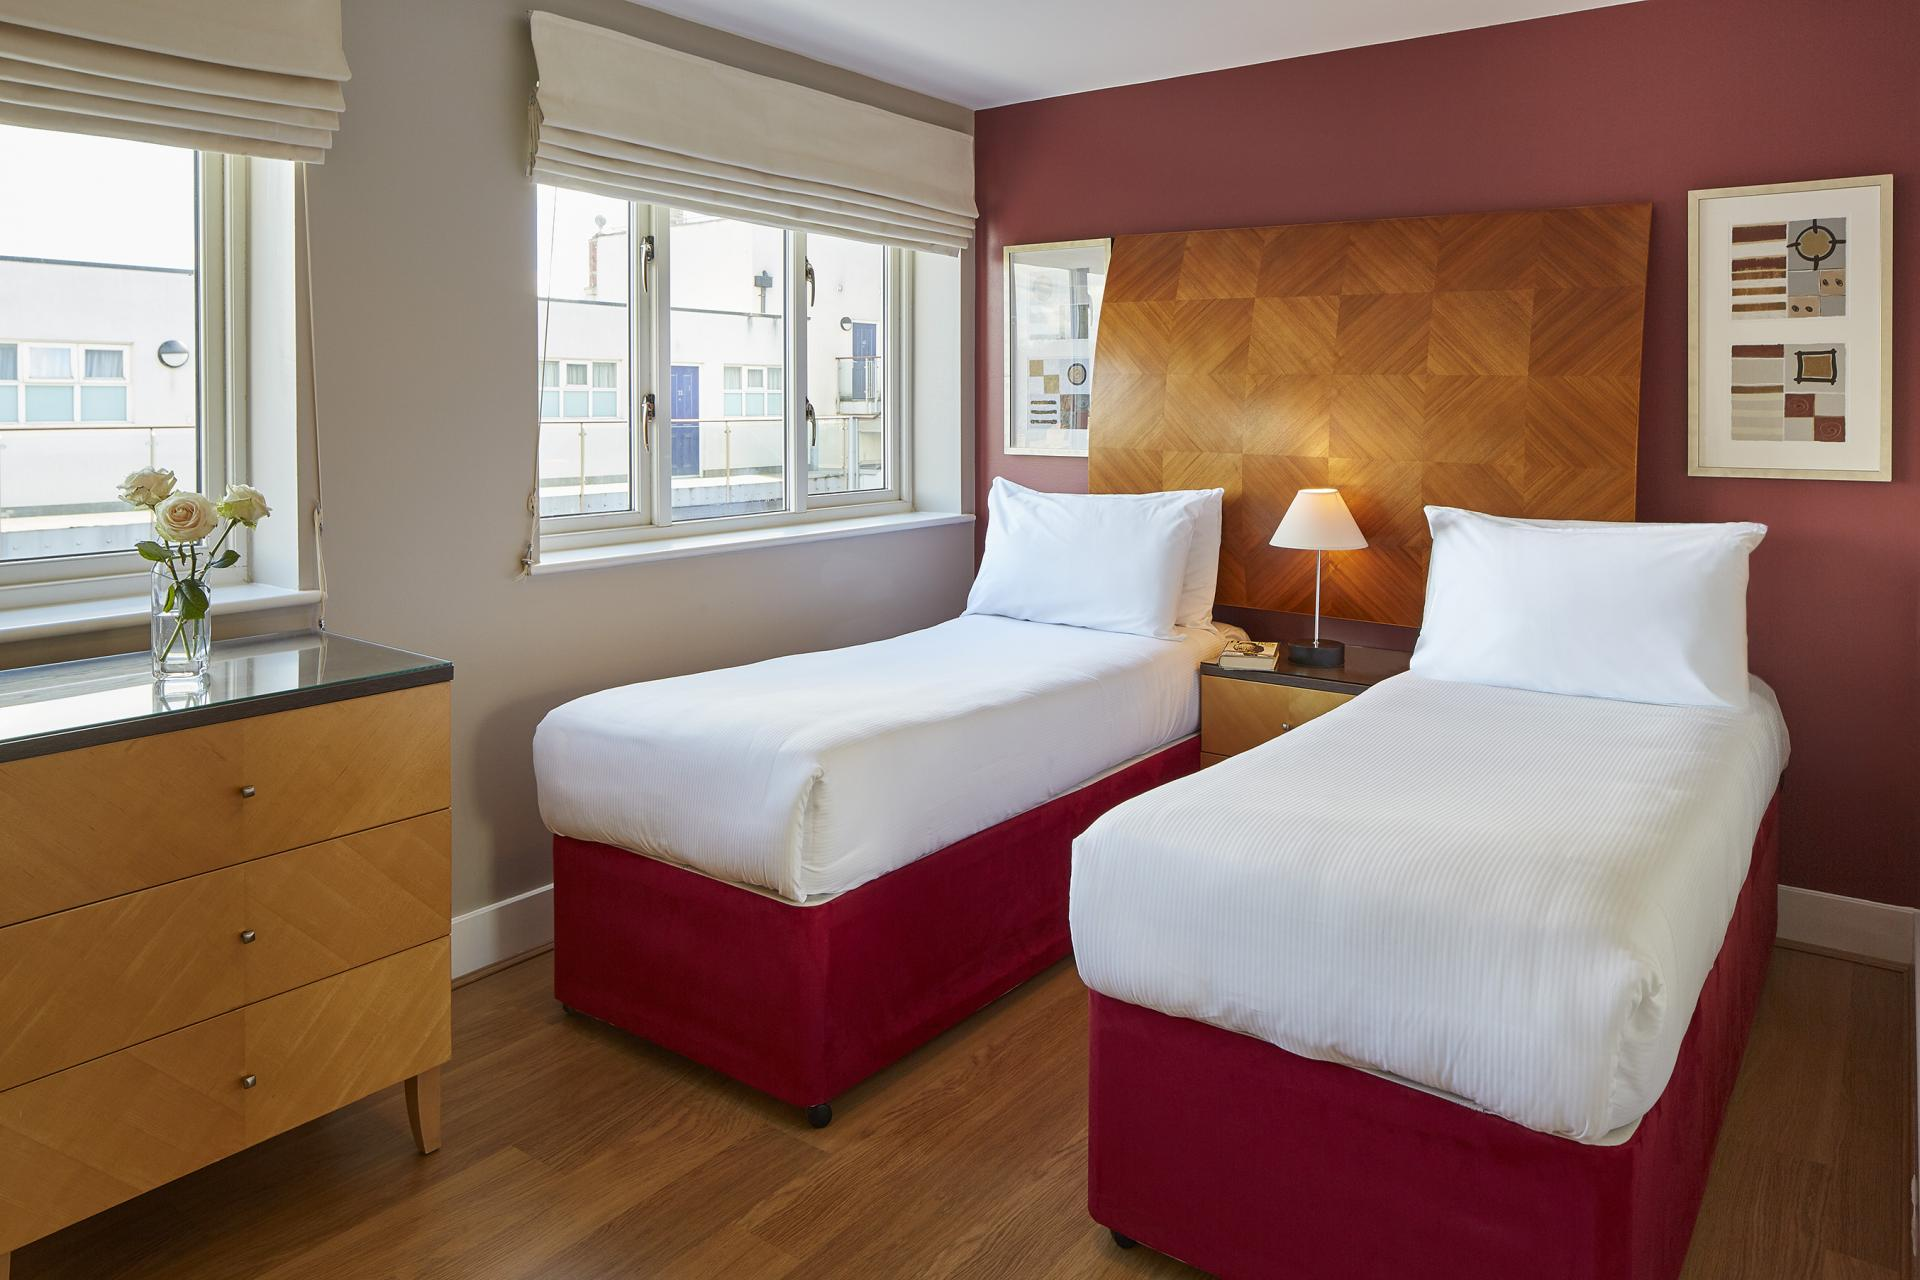 Twin beds at Limehouse Apartments, Limehouse, London